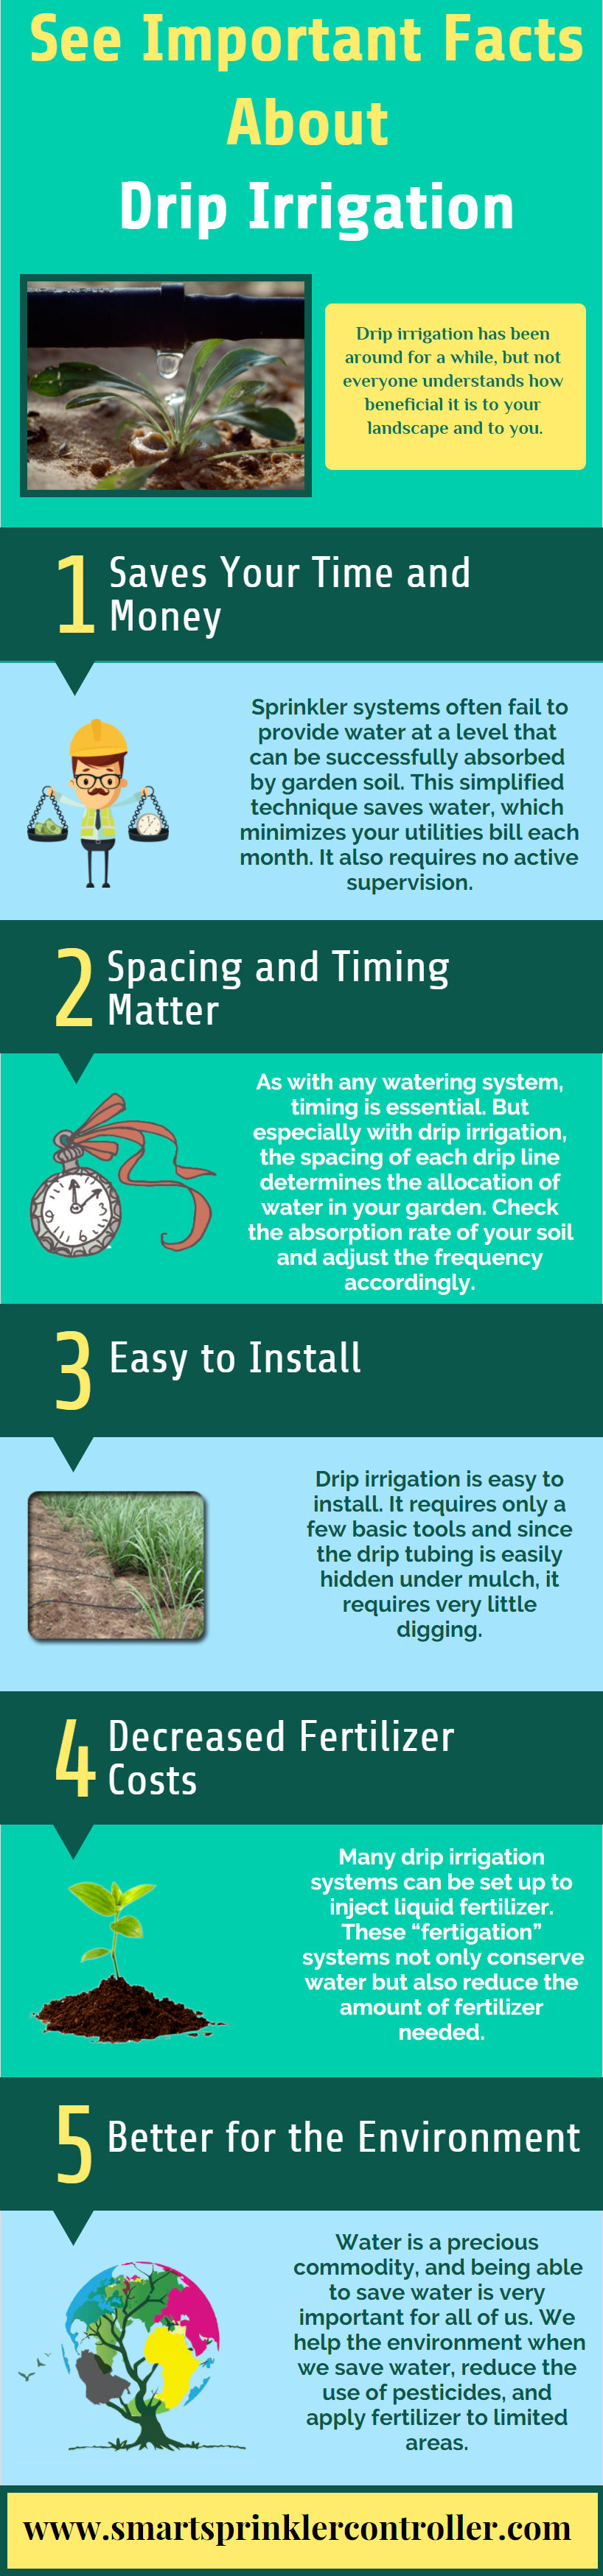 If You Are Planning To Irrigate Your Garden With Drip Irrigation Kit Installing A Controller For Lawn Sprinklers Systems So See Also These Important Facts About And Then Buy The Best System